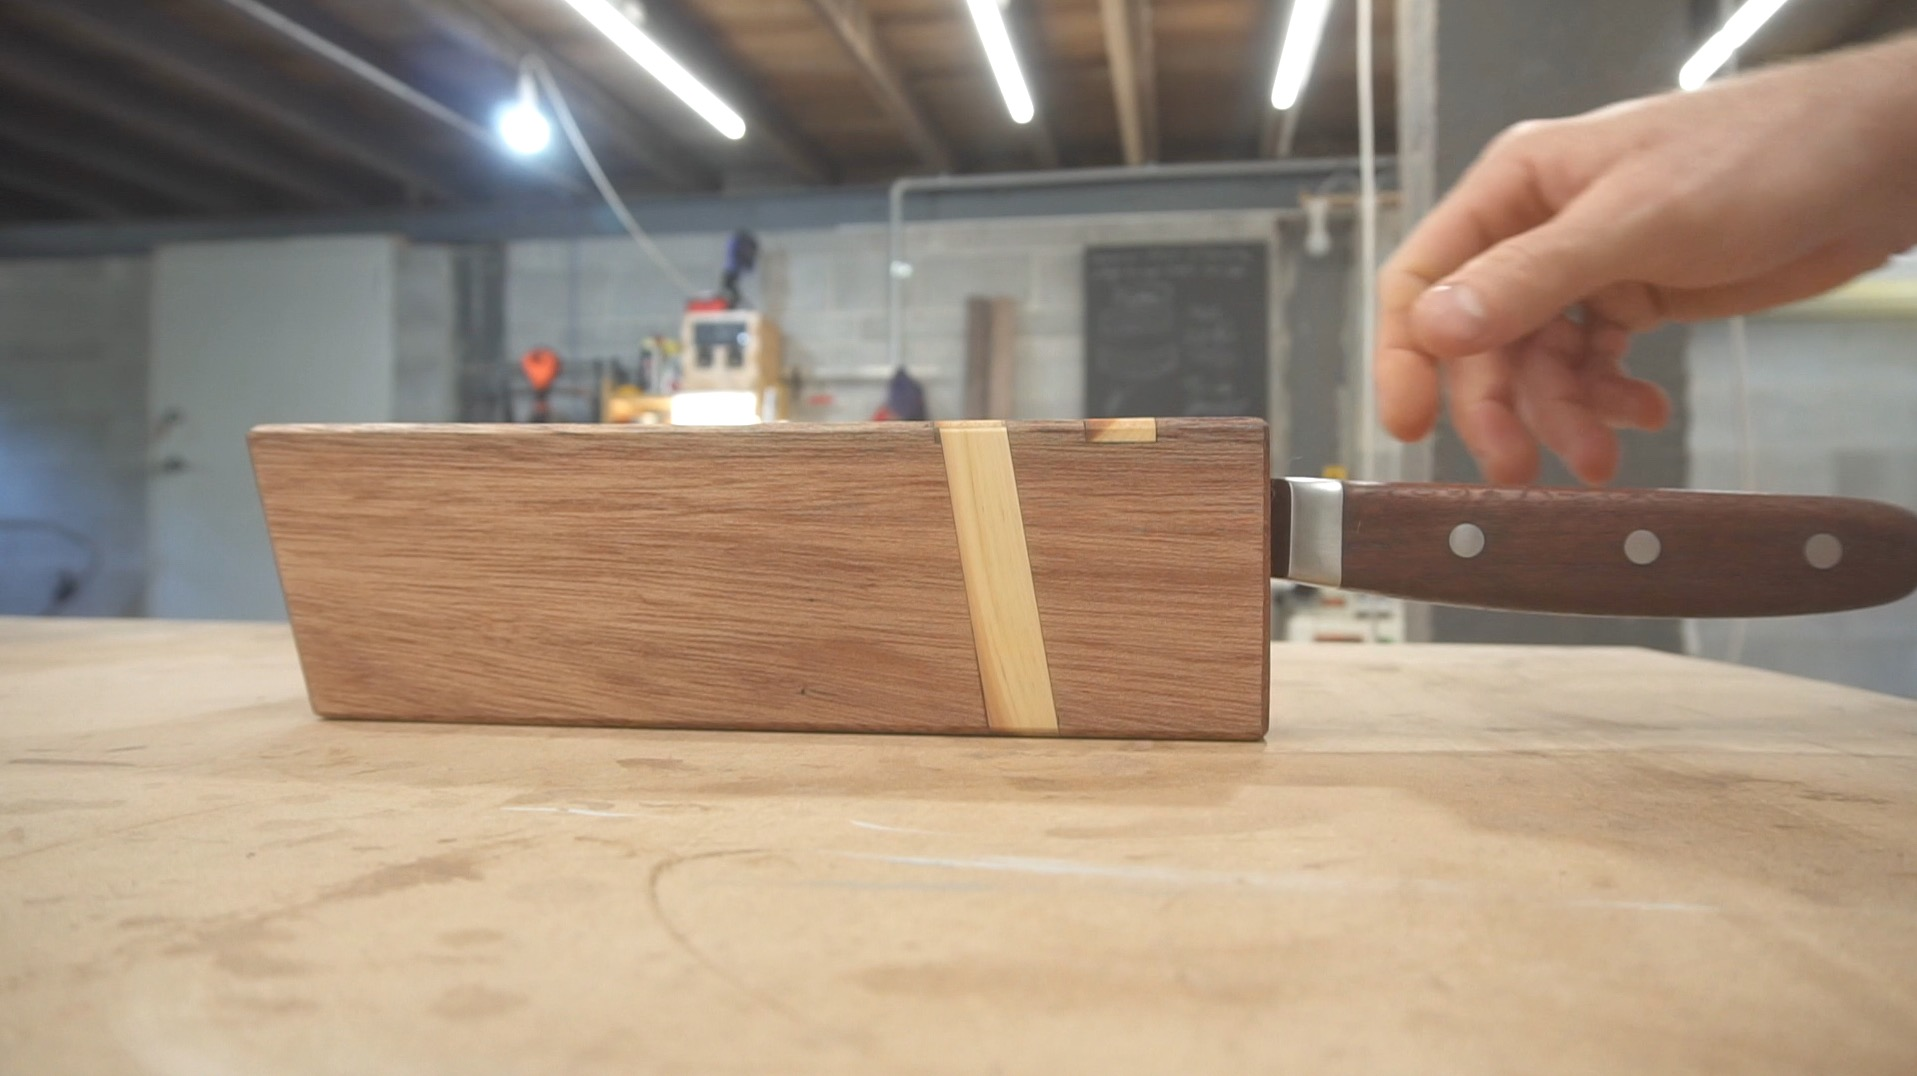 Picture of Magnetic Wood Sheath for a Kitchen Knife